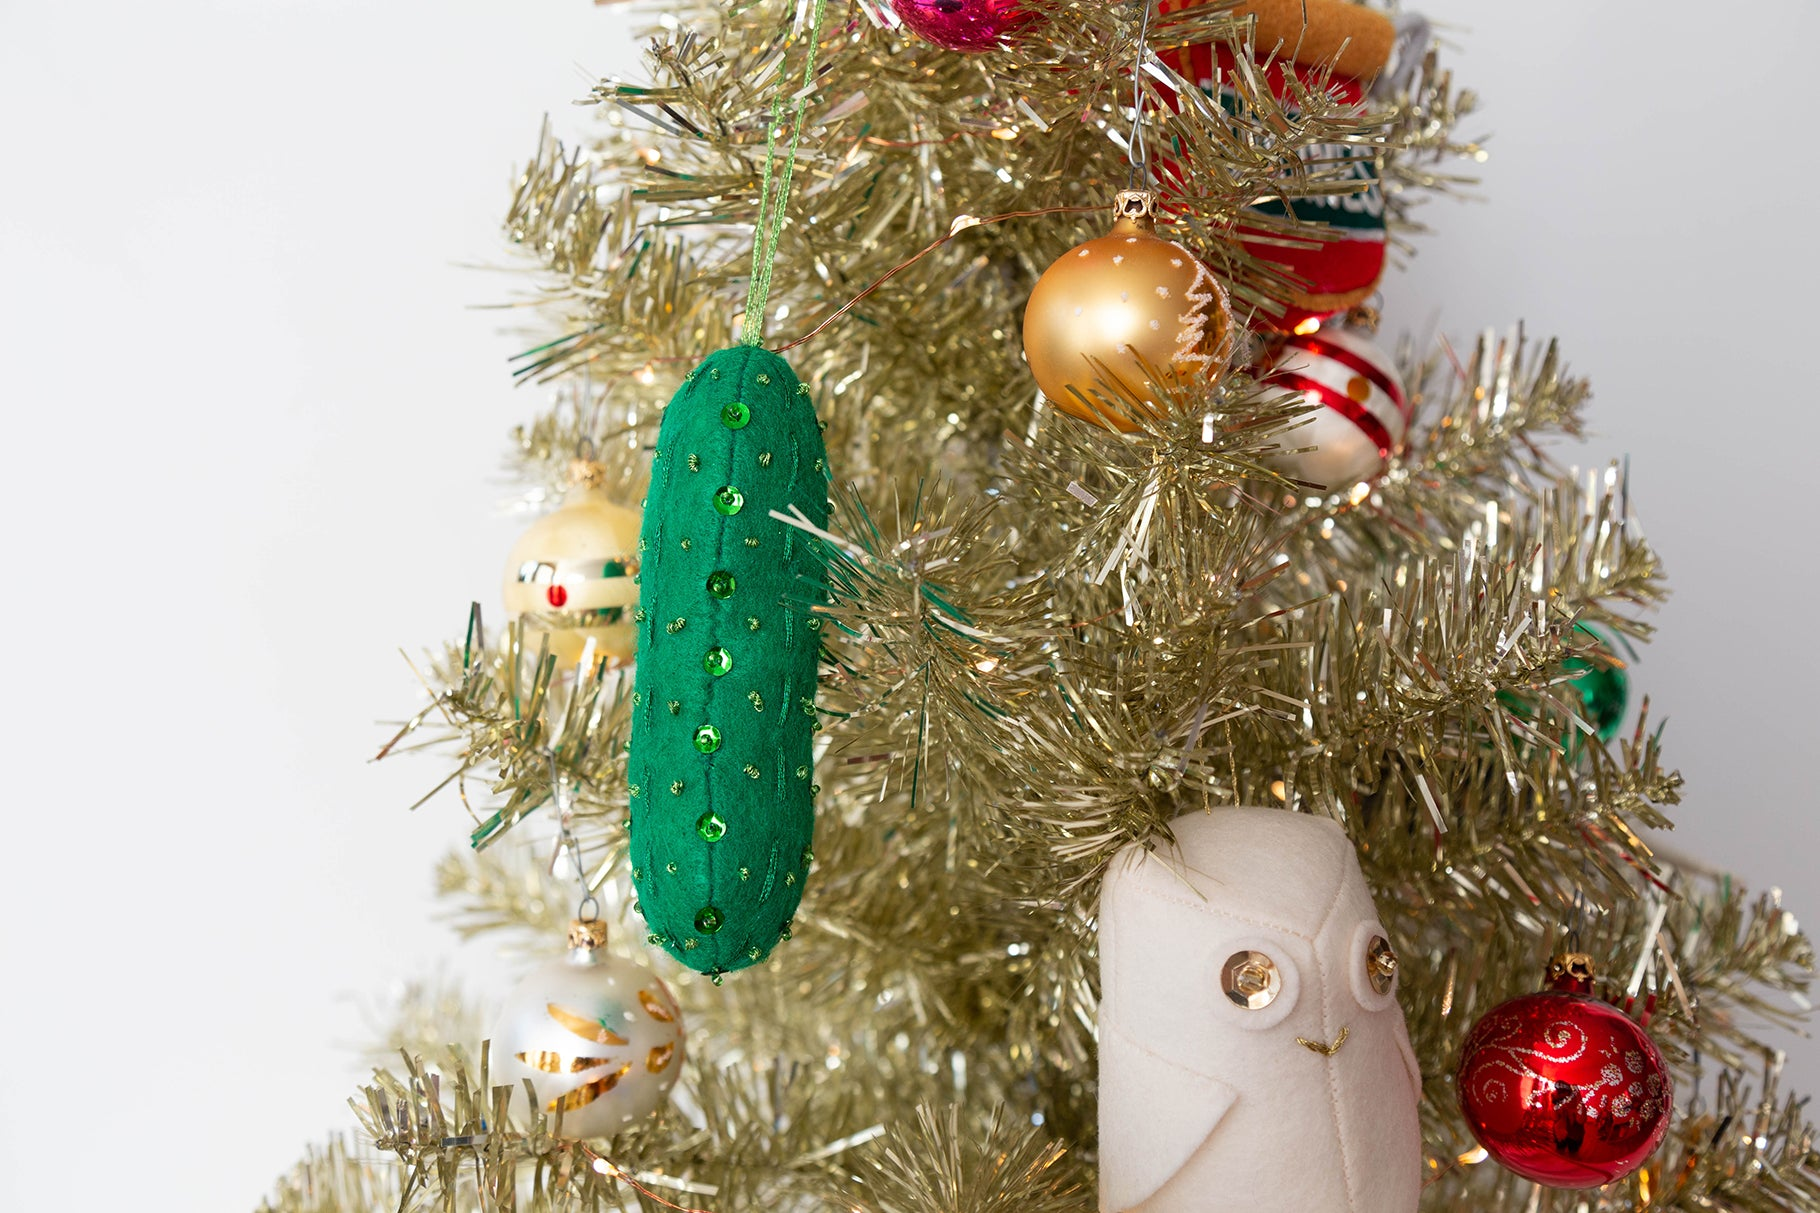 Free Christmas Pickle Ornament | Grainline Studio